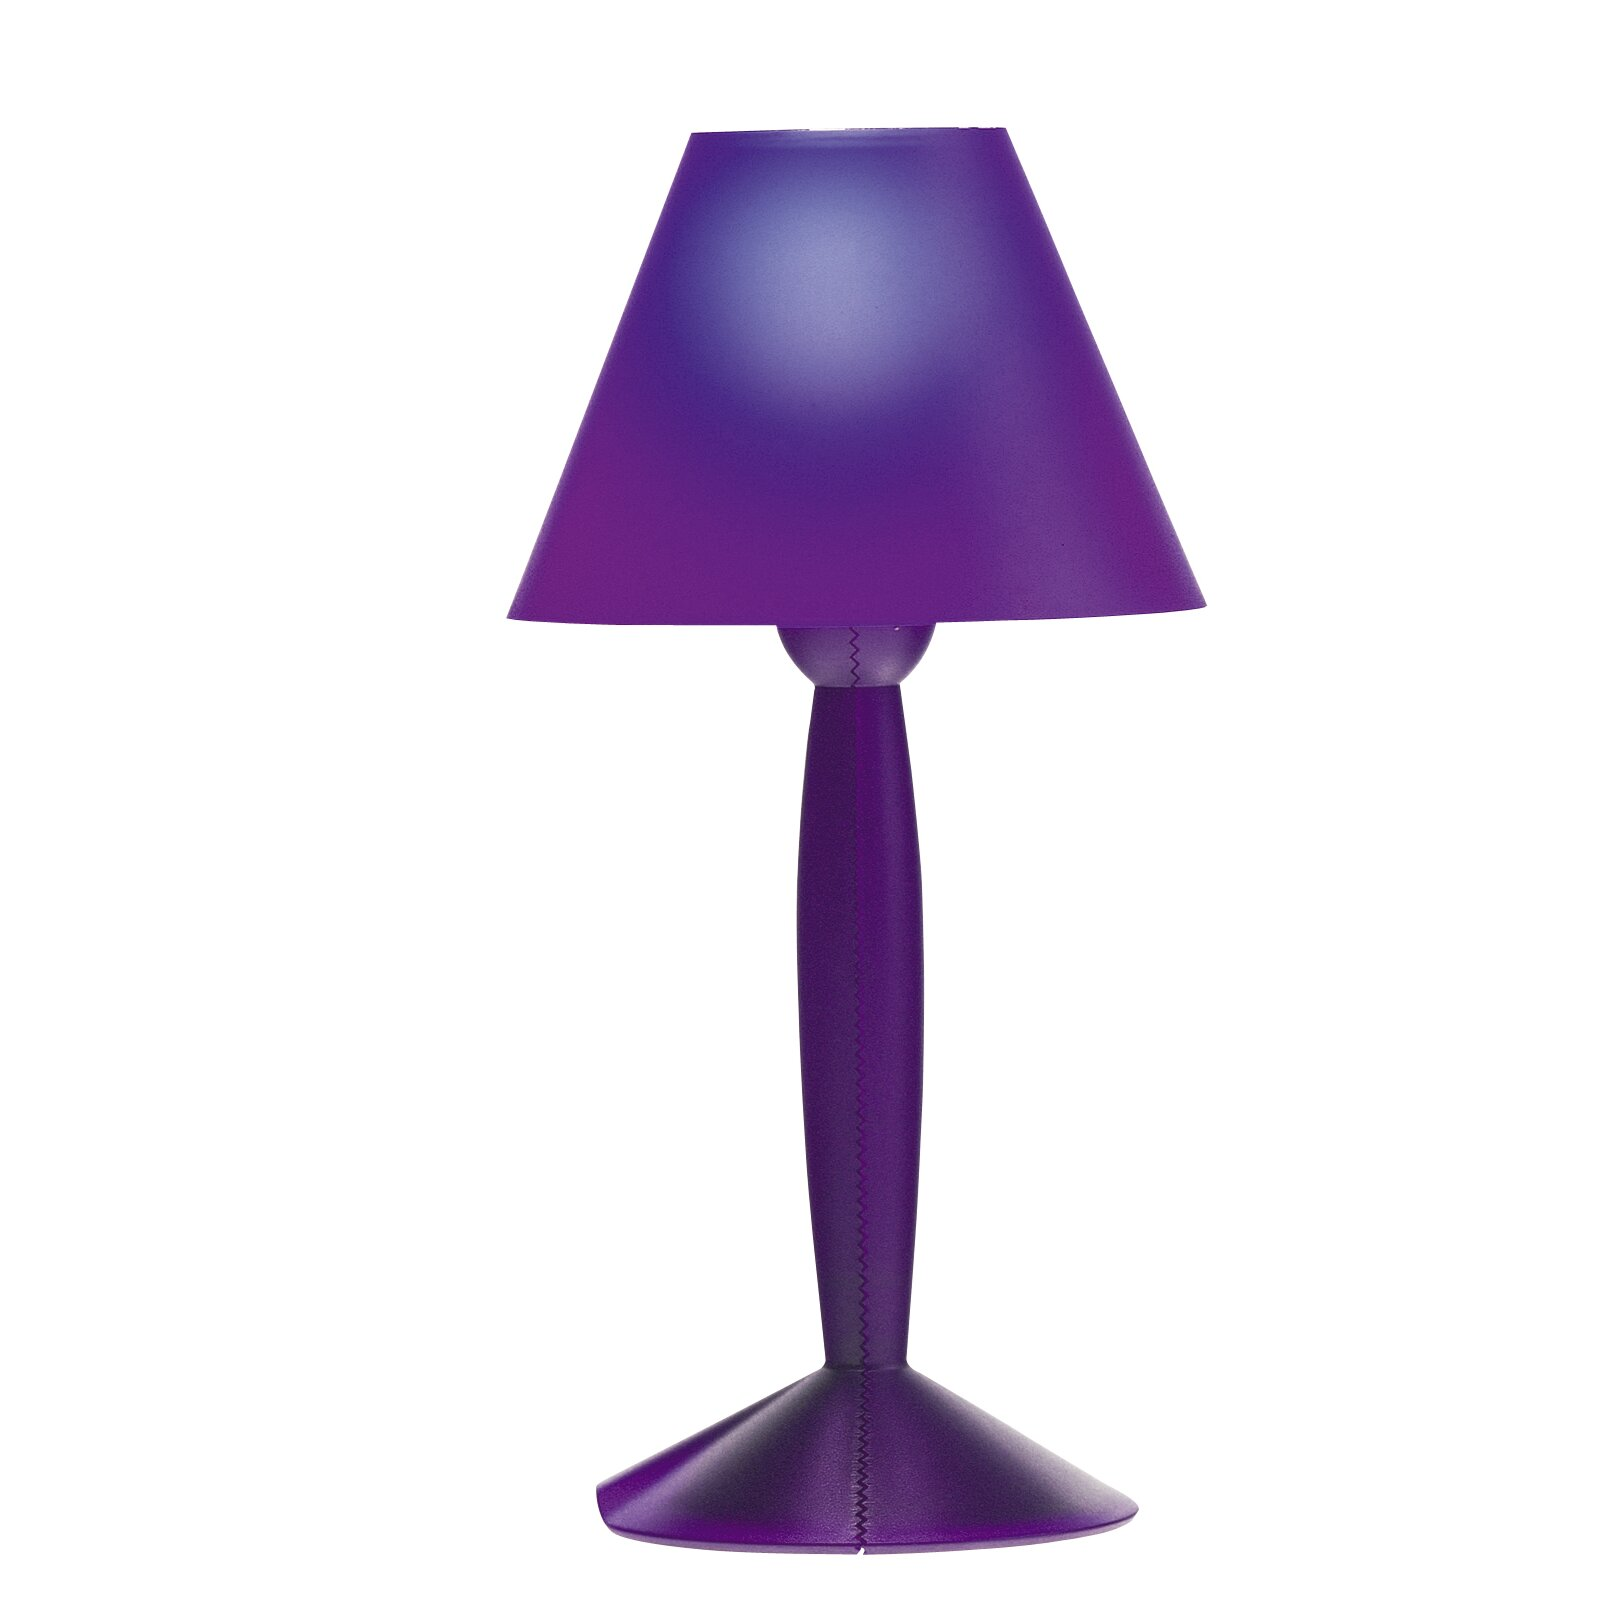 Flos 284cm Table Lamp